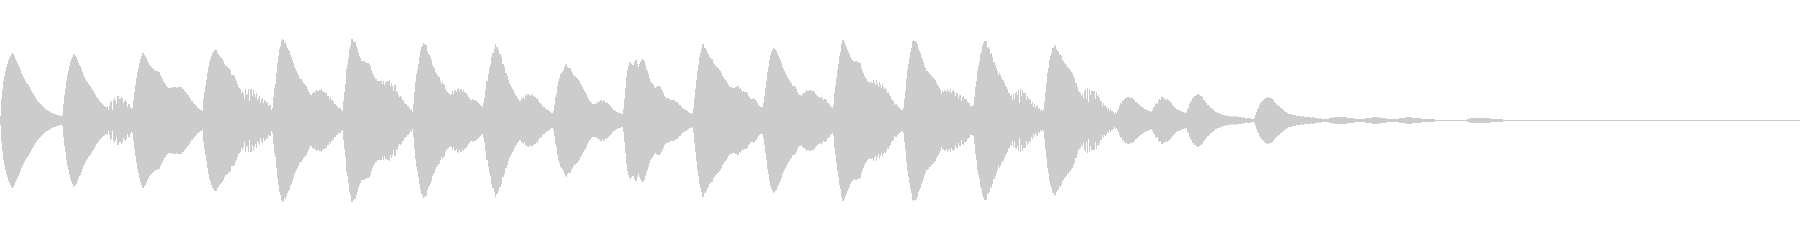 SE01-1 with the sound of flying butterflies's unreproduced waveform